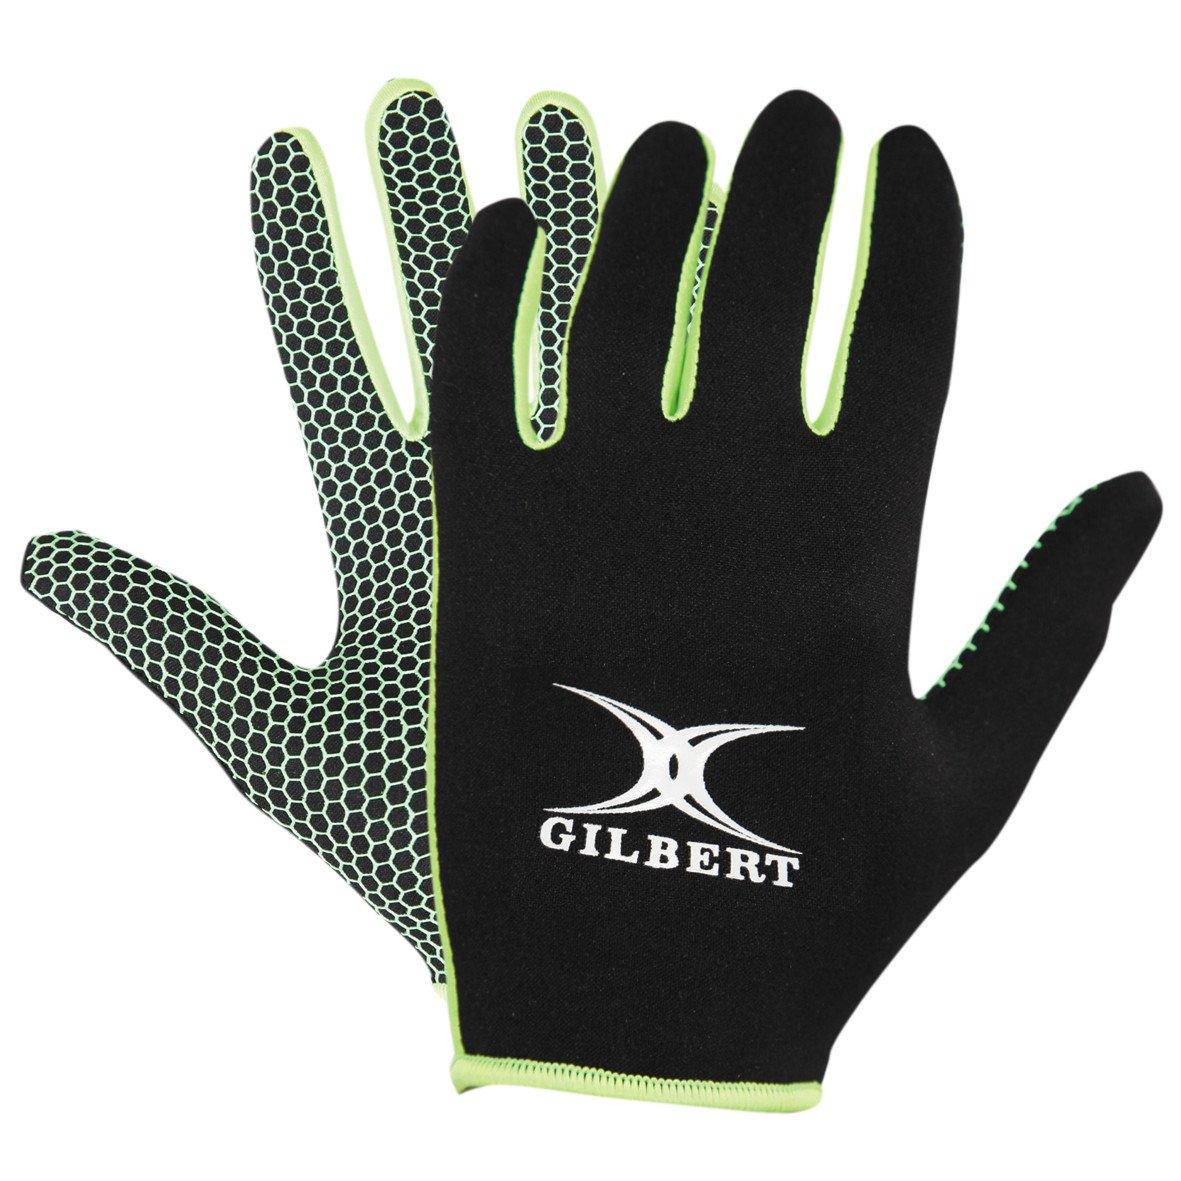 Men's Atomic Full Finger Rugby Grip Mitt Black - First XV rugbystuff.com